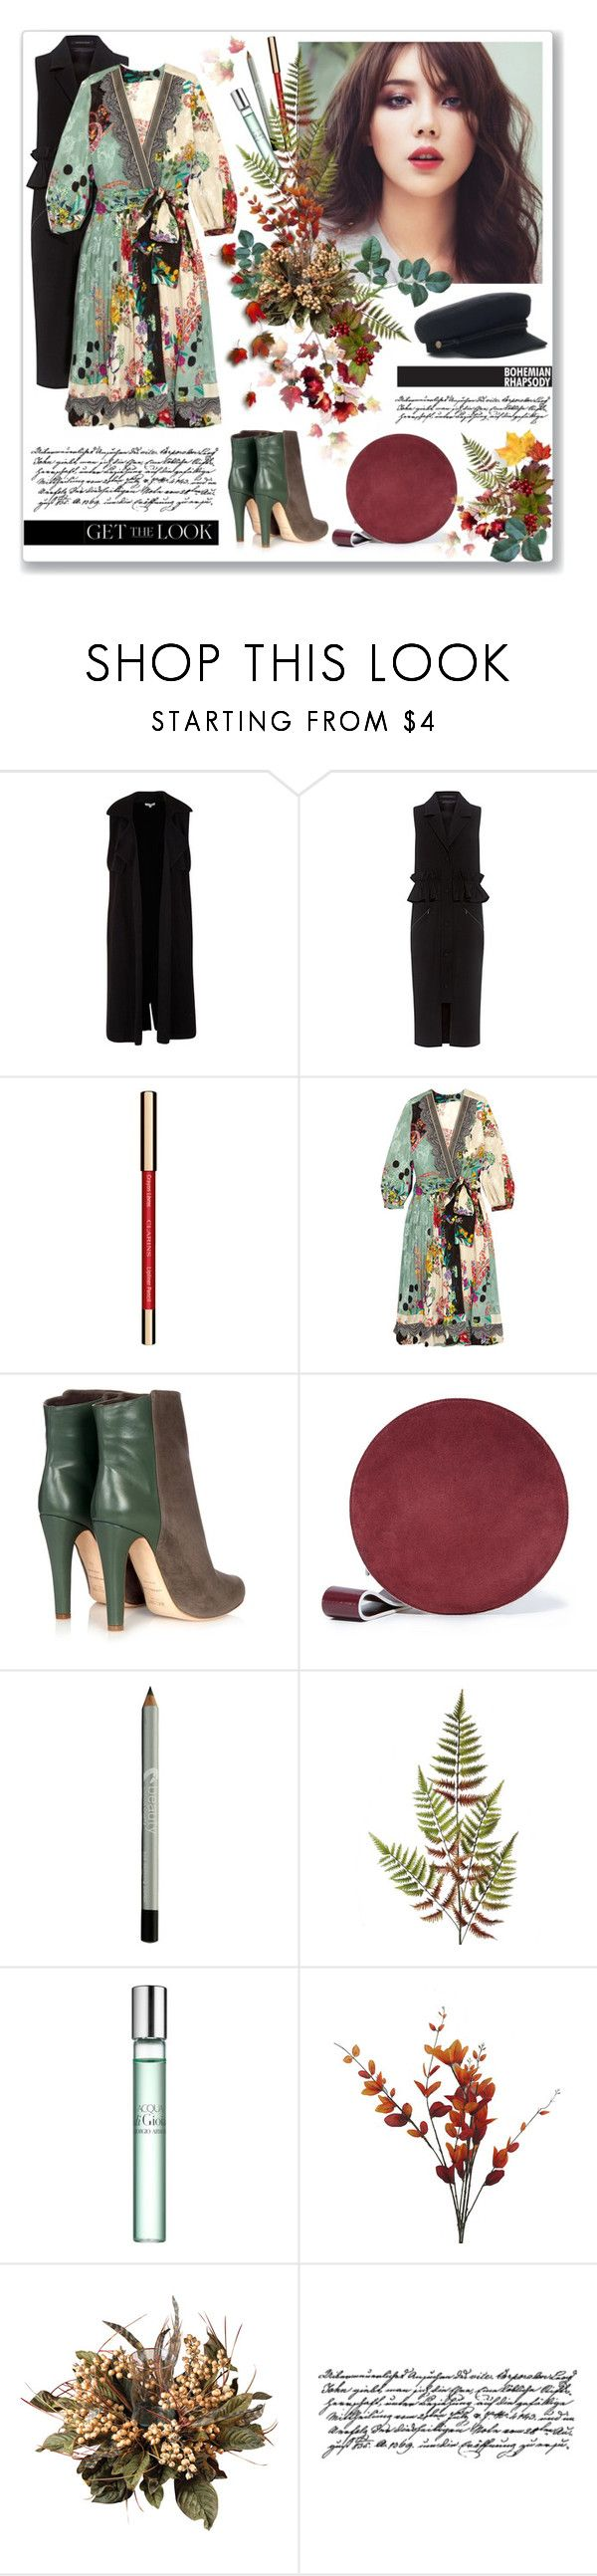 """""""Printed dress for fall"""" by mariarty ❤ liked on Polyvore featuring Mother of Pearl, John Lewis, Etro, Malone Souliers, Diane Von Furstenberg, Sephora Collection, Nearly Natural and Tim Holtz"""